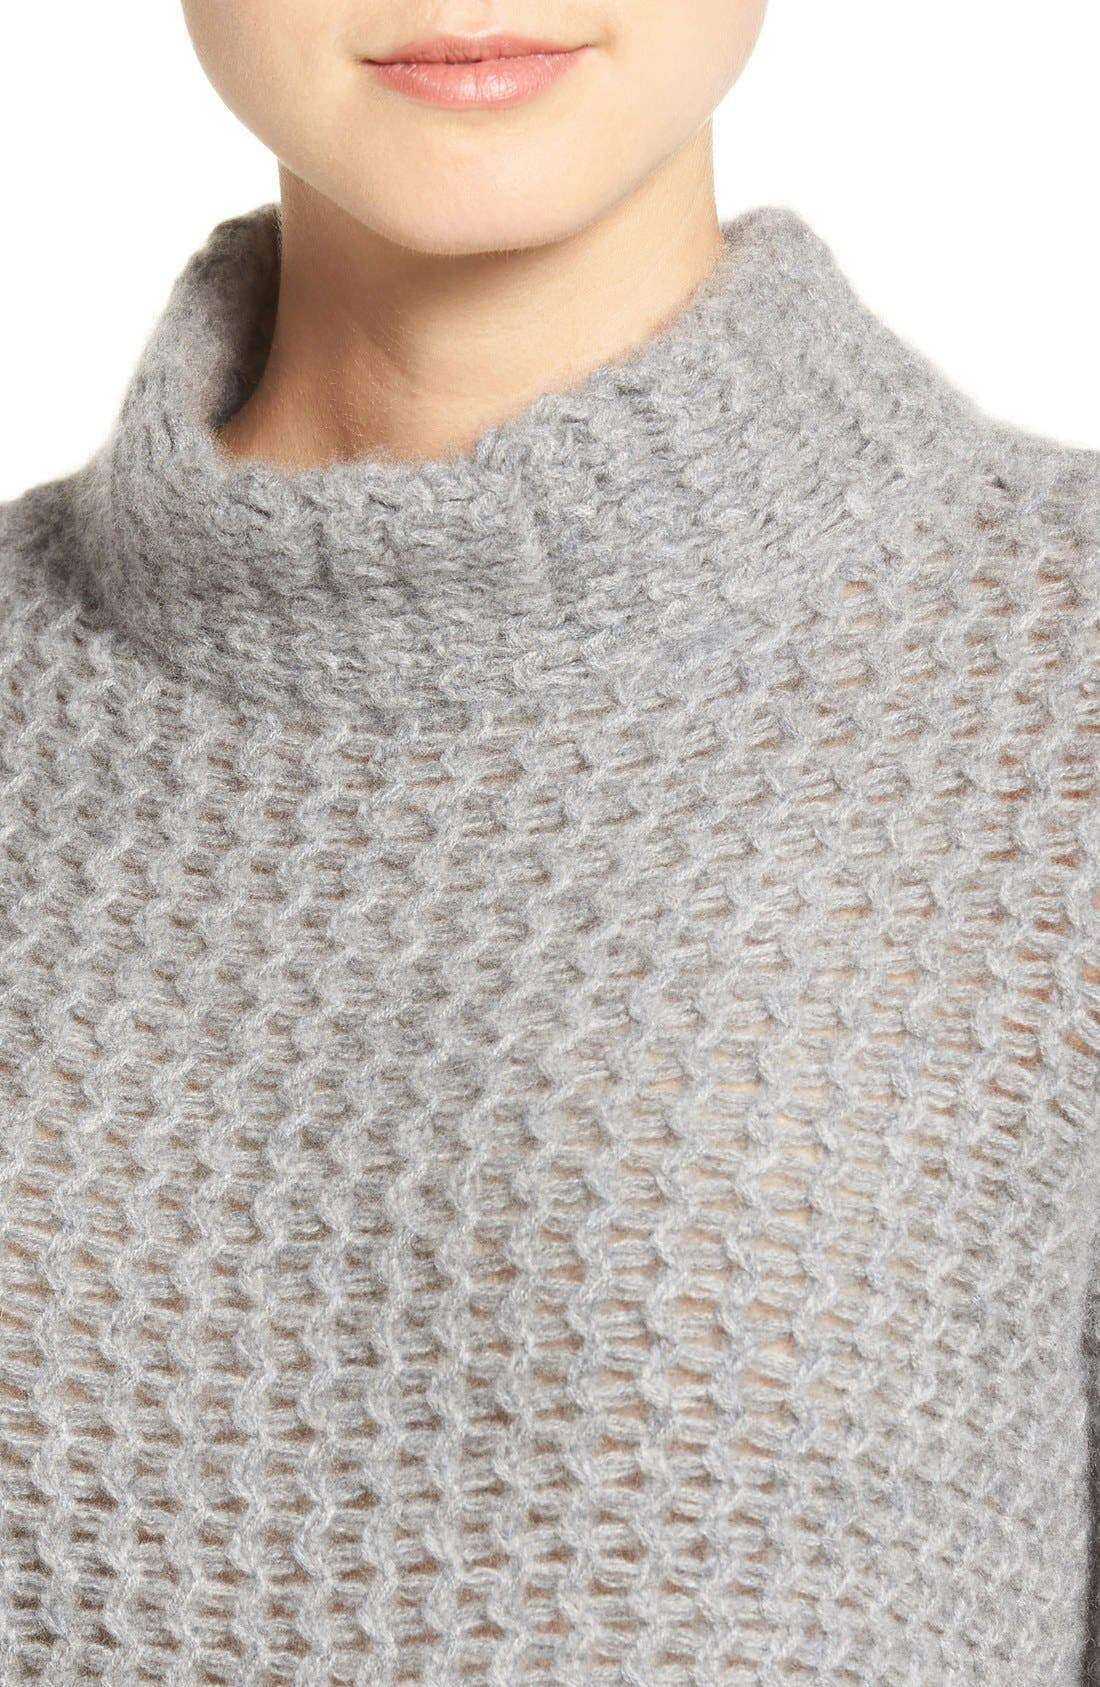 Stitch Detail Cashmere Mock Neck Sweater,                             Alternate thumbnail 5, color,                             Grey